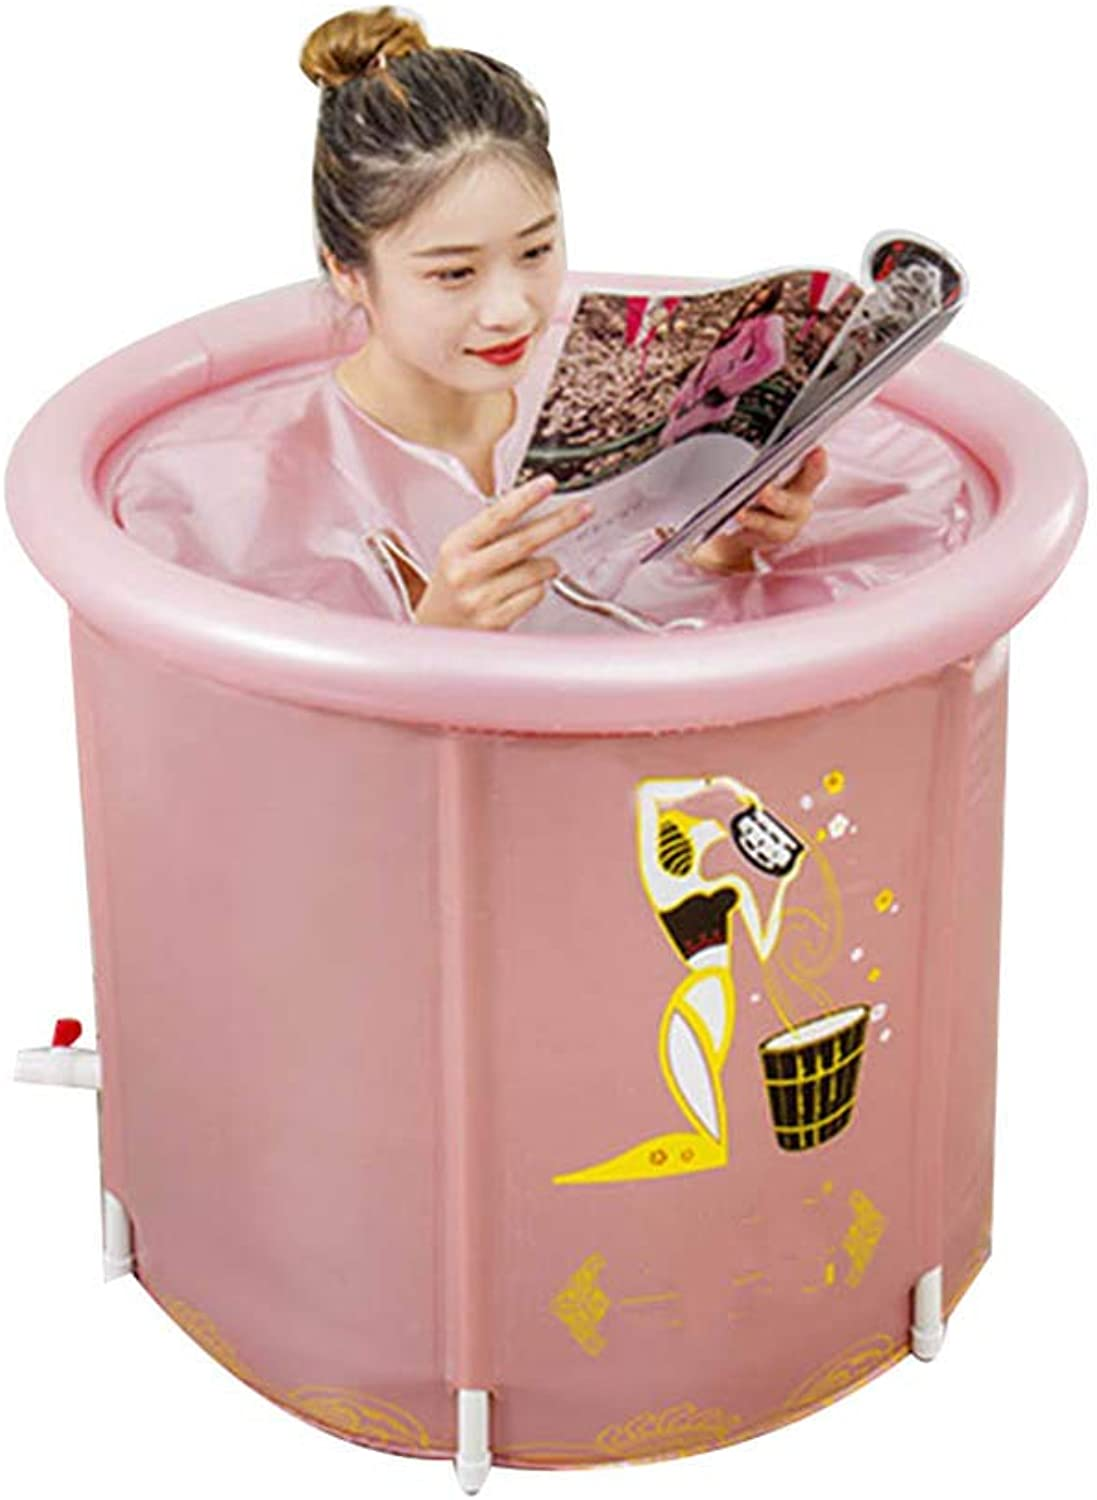 Bathtub Adult, folding insulated bath tub with lid, large-capacity portable bath separate, thick PVC bath barrel (pink) 70  70cm